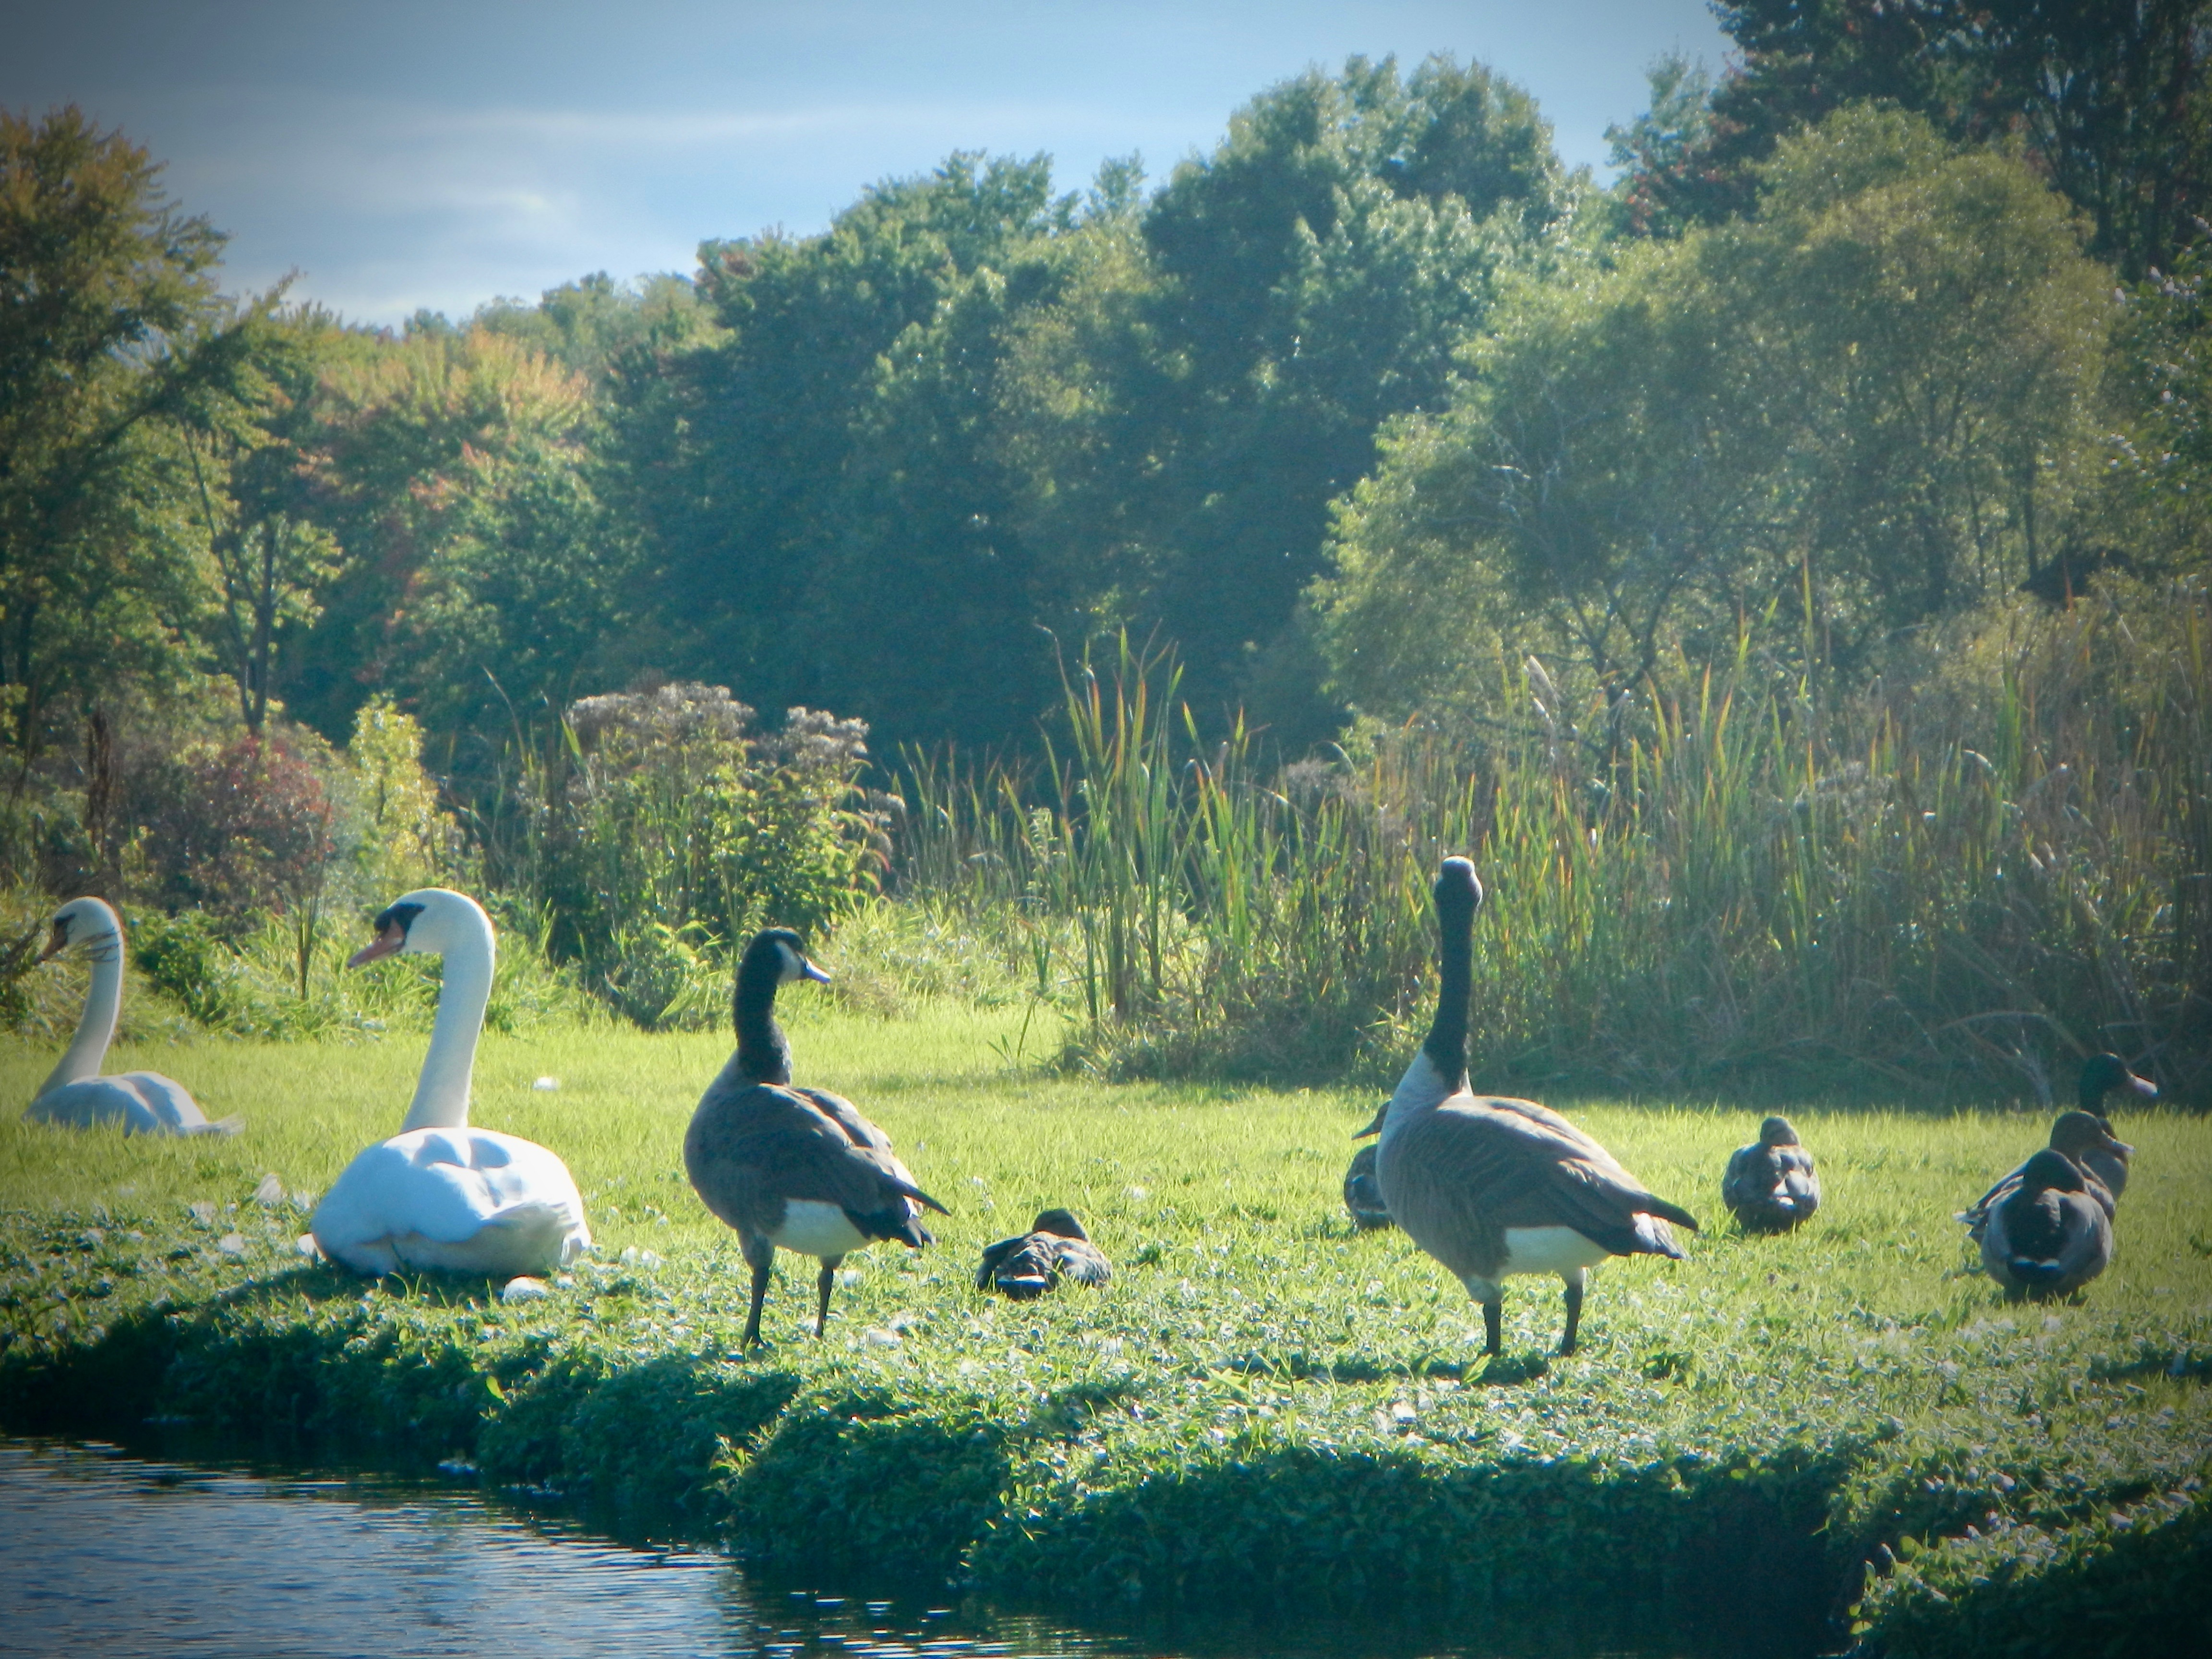 swans-geese-and-ducks-on-rogue-riverbank